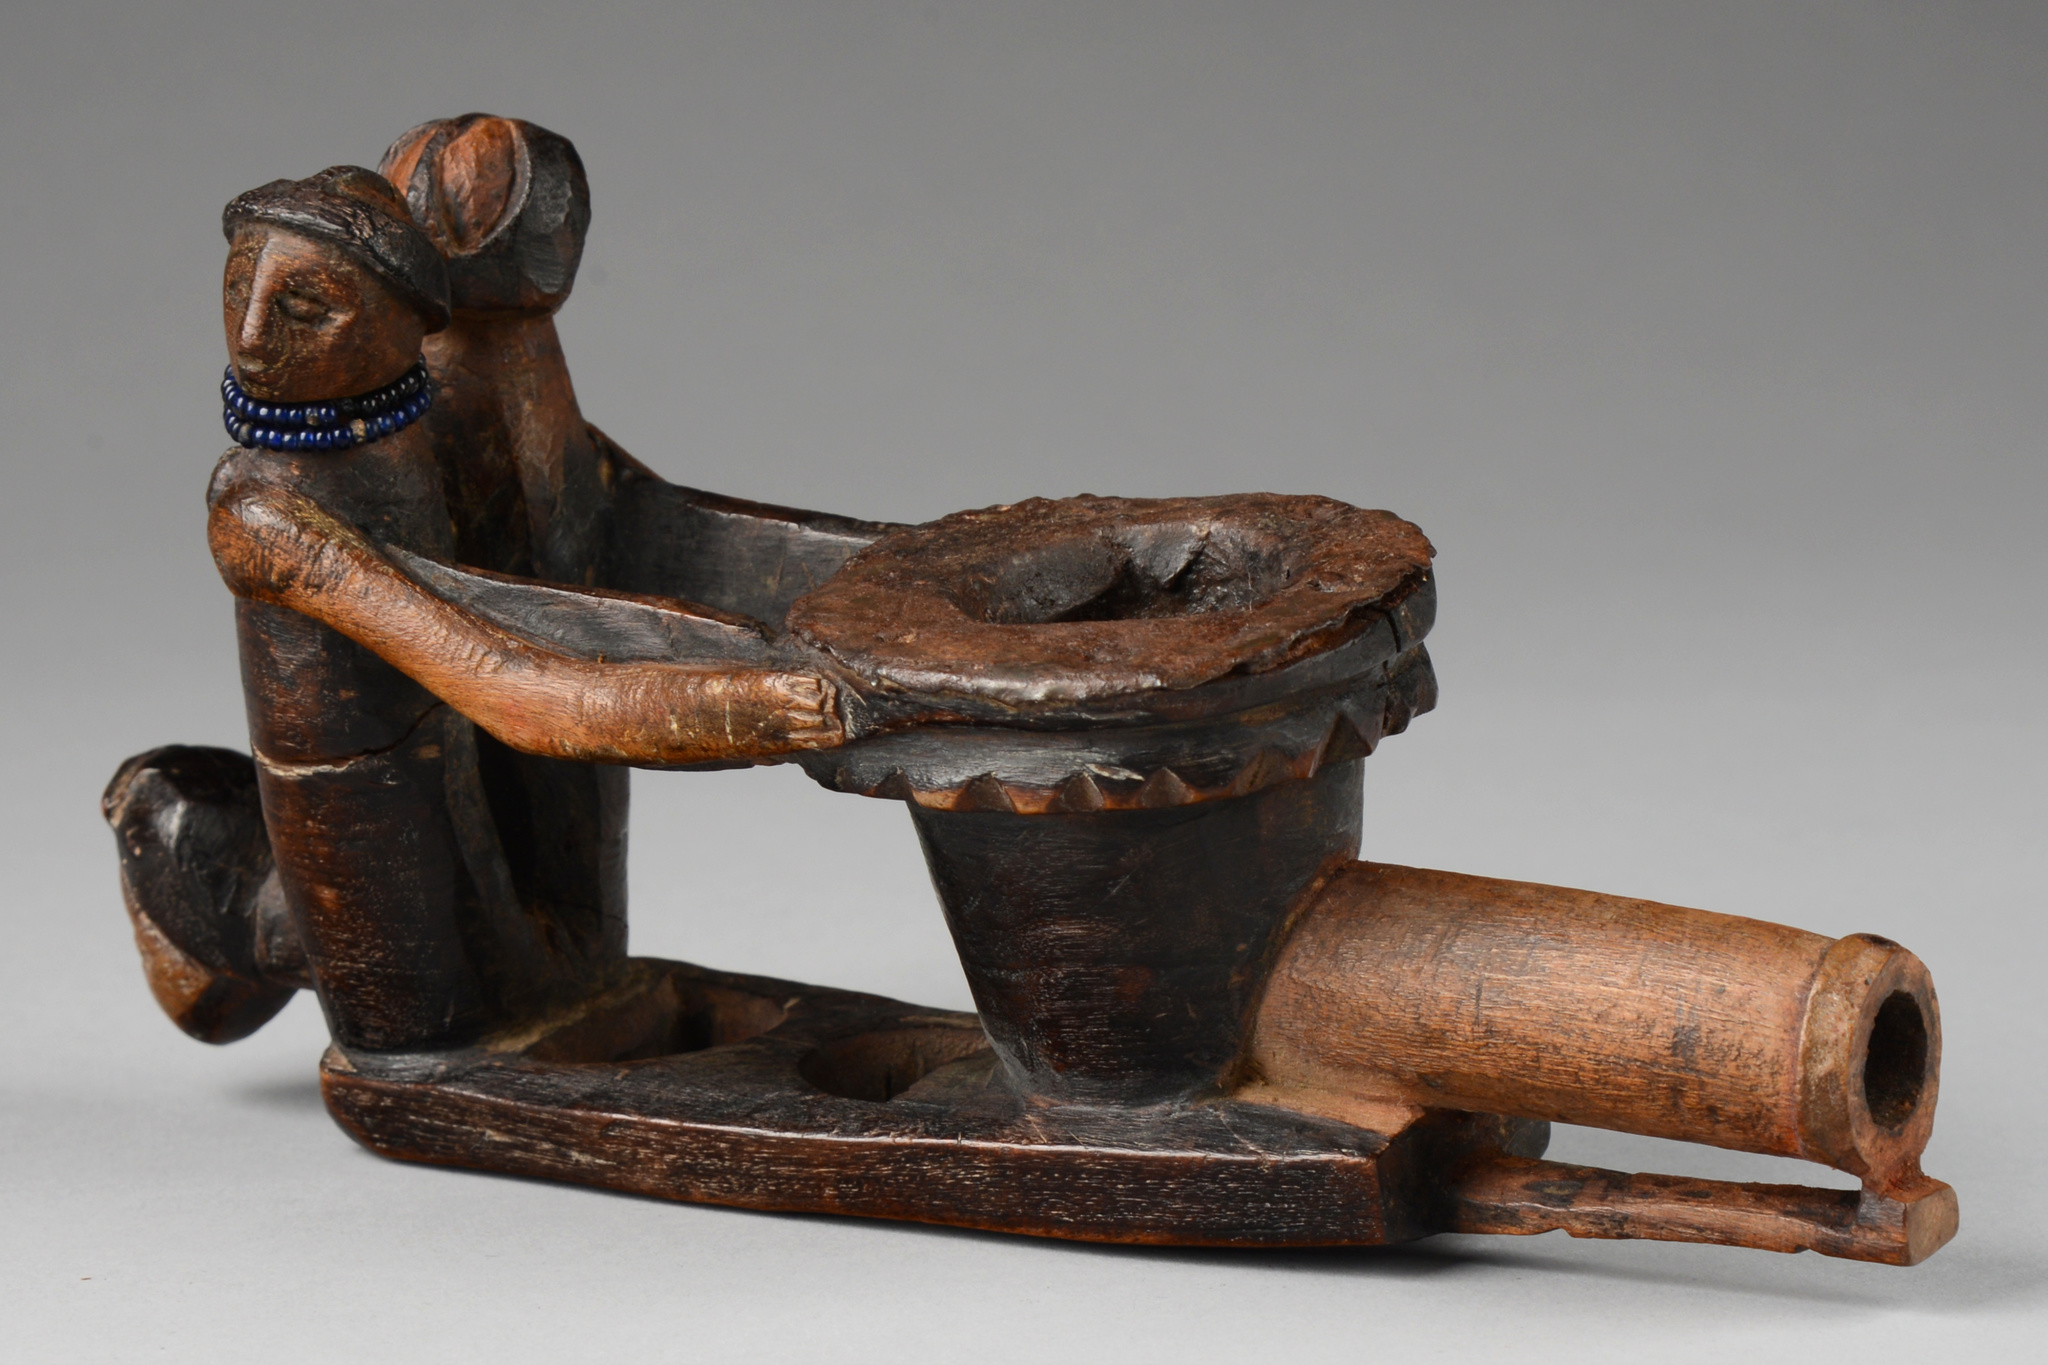 Figurally carved pipe